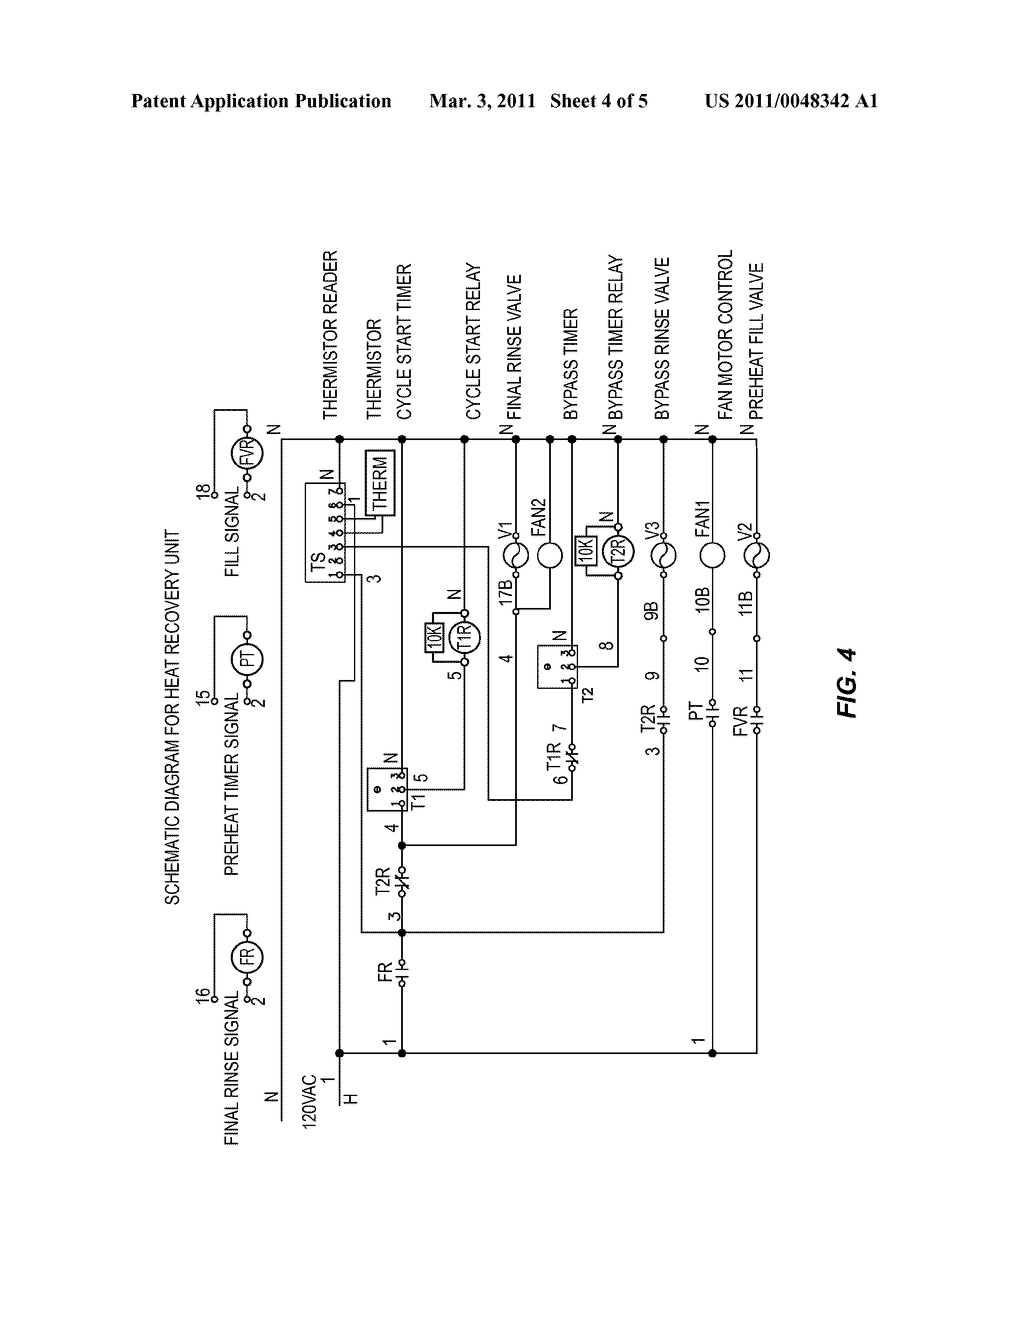 Heat Exchanger Water Heating System For Commercial Dishwasher Schematic Diagram And Image 05